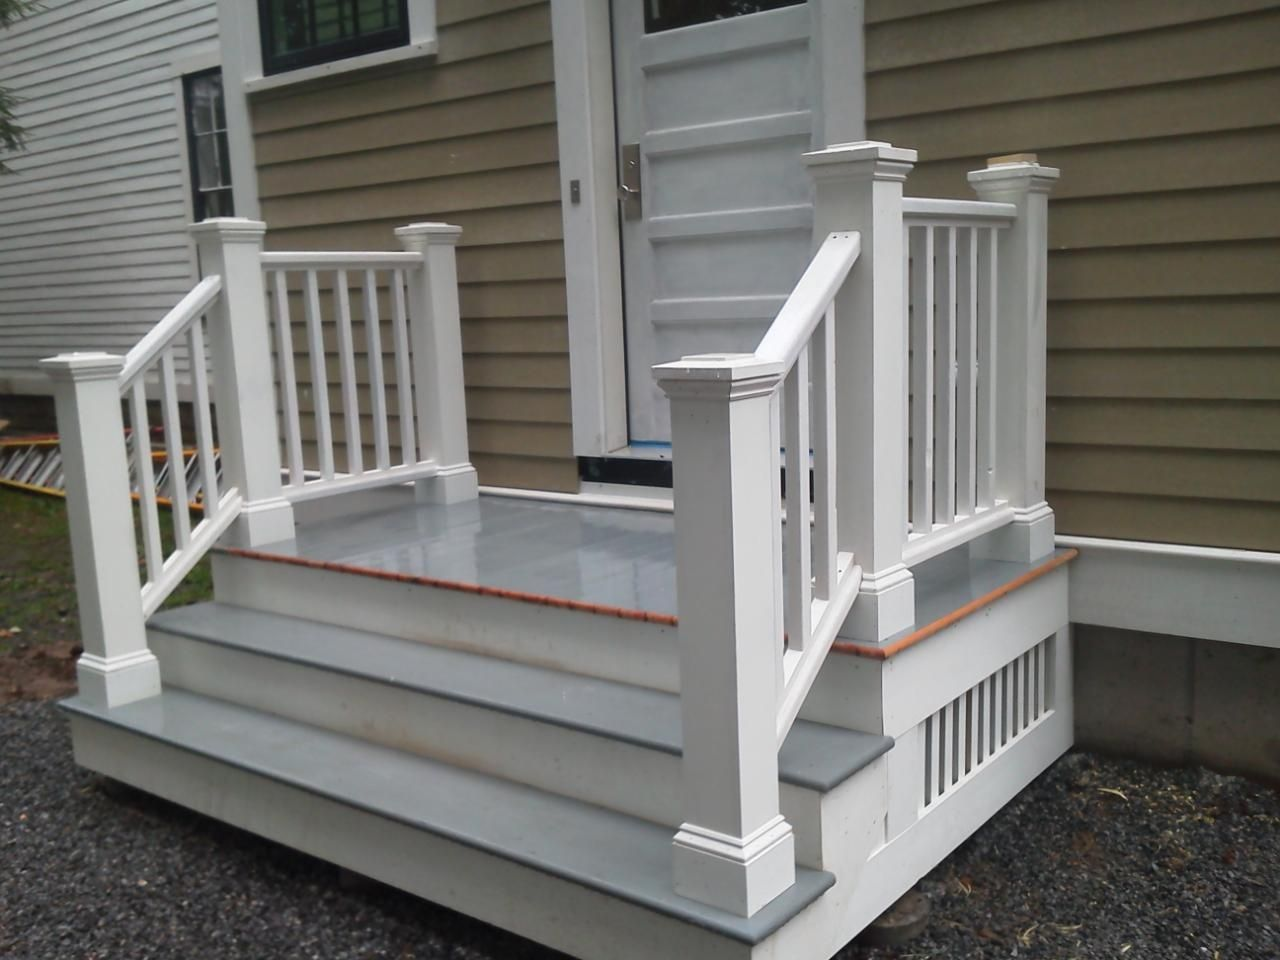 Side Door Steps Front Door Steps Front Porch Steps Patio Stairs | Premade Wooden Steps For Porch | Cedar Tone | Deck Stairs | Fiberglass | Concrete Stairs | Manufactured Homes